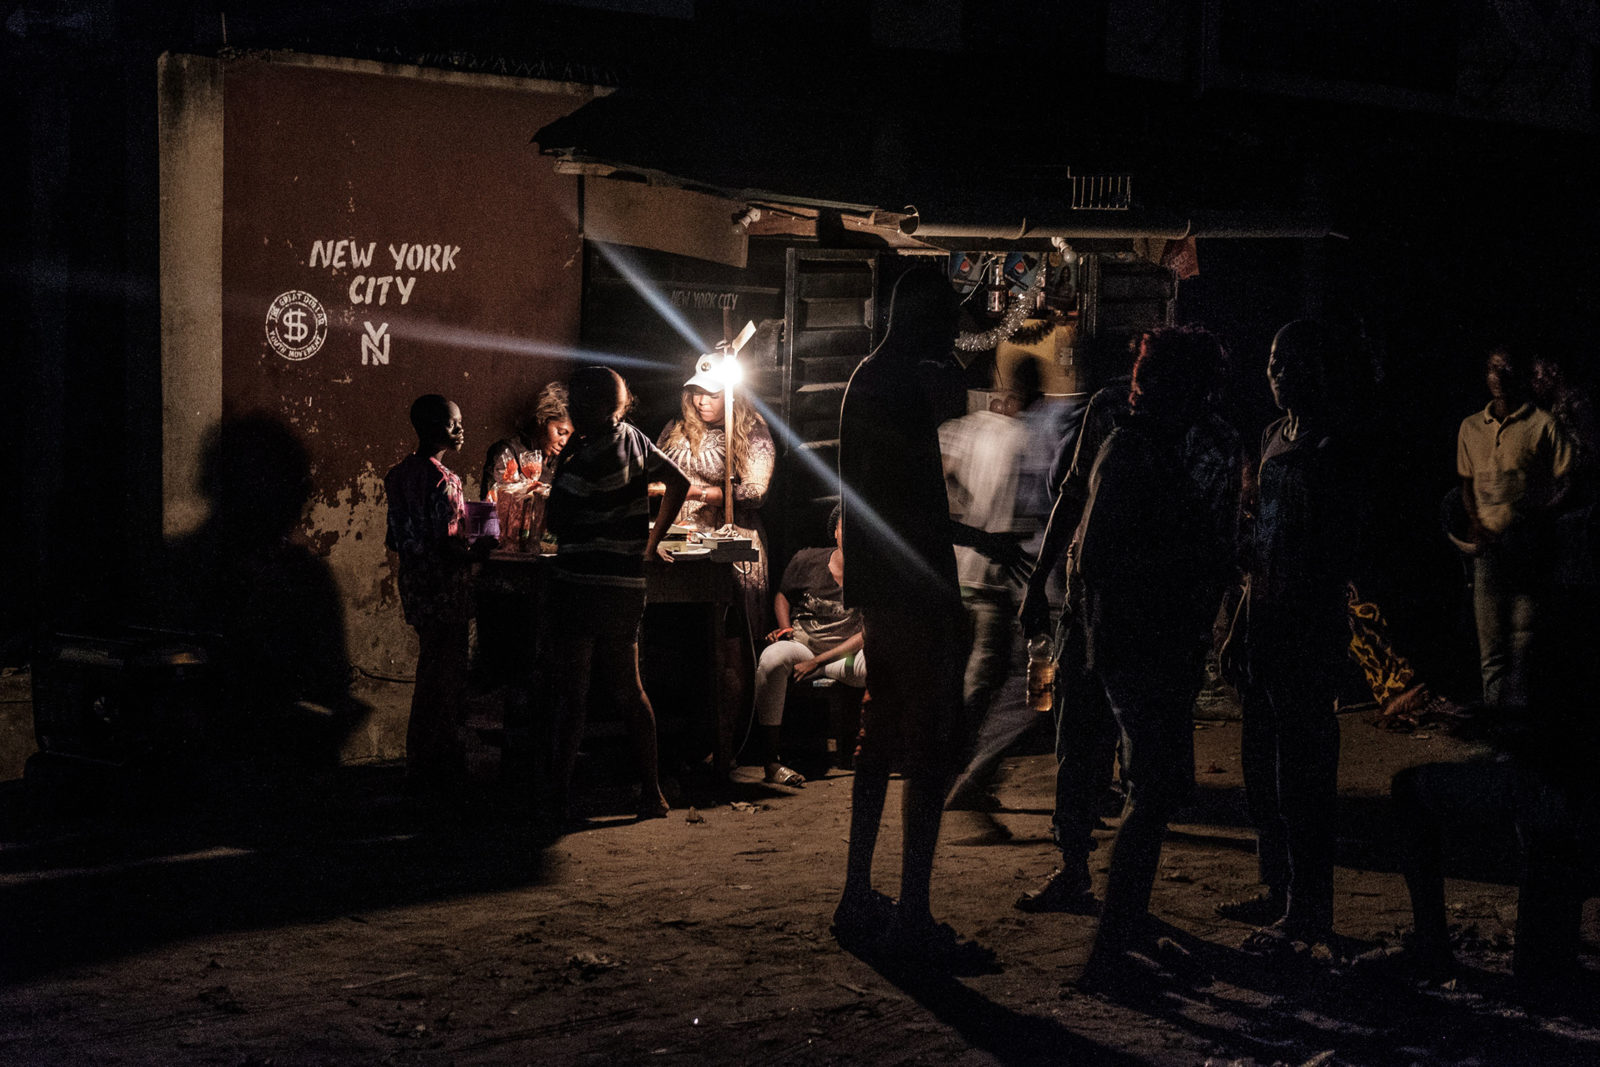 (EN) New York in Bariga, from the 2018 series 'Bariga Nights'